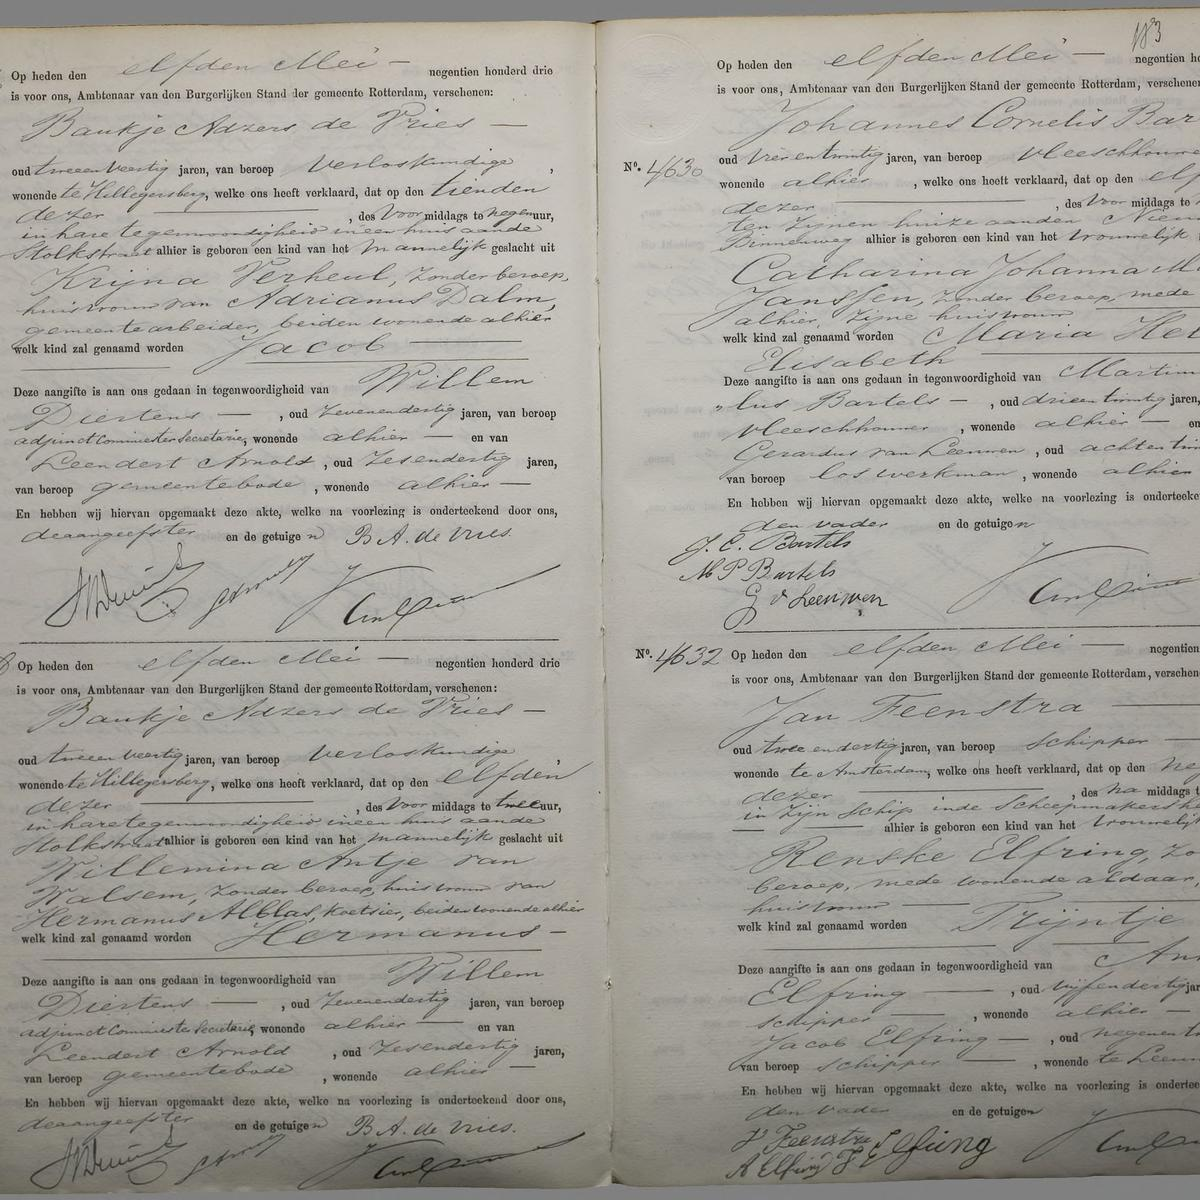 Civil registry of births, Rechtbank Rotterdam, 1903, records 4626-4632 (even)